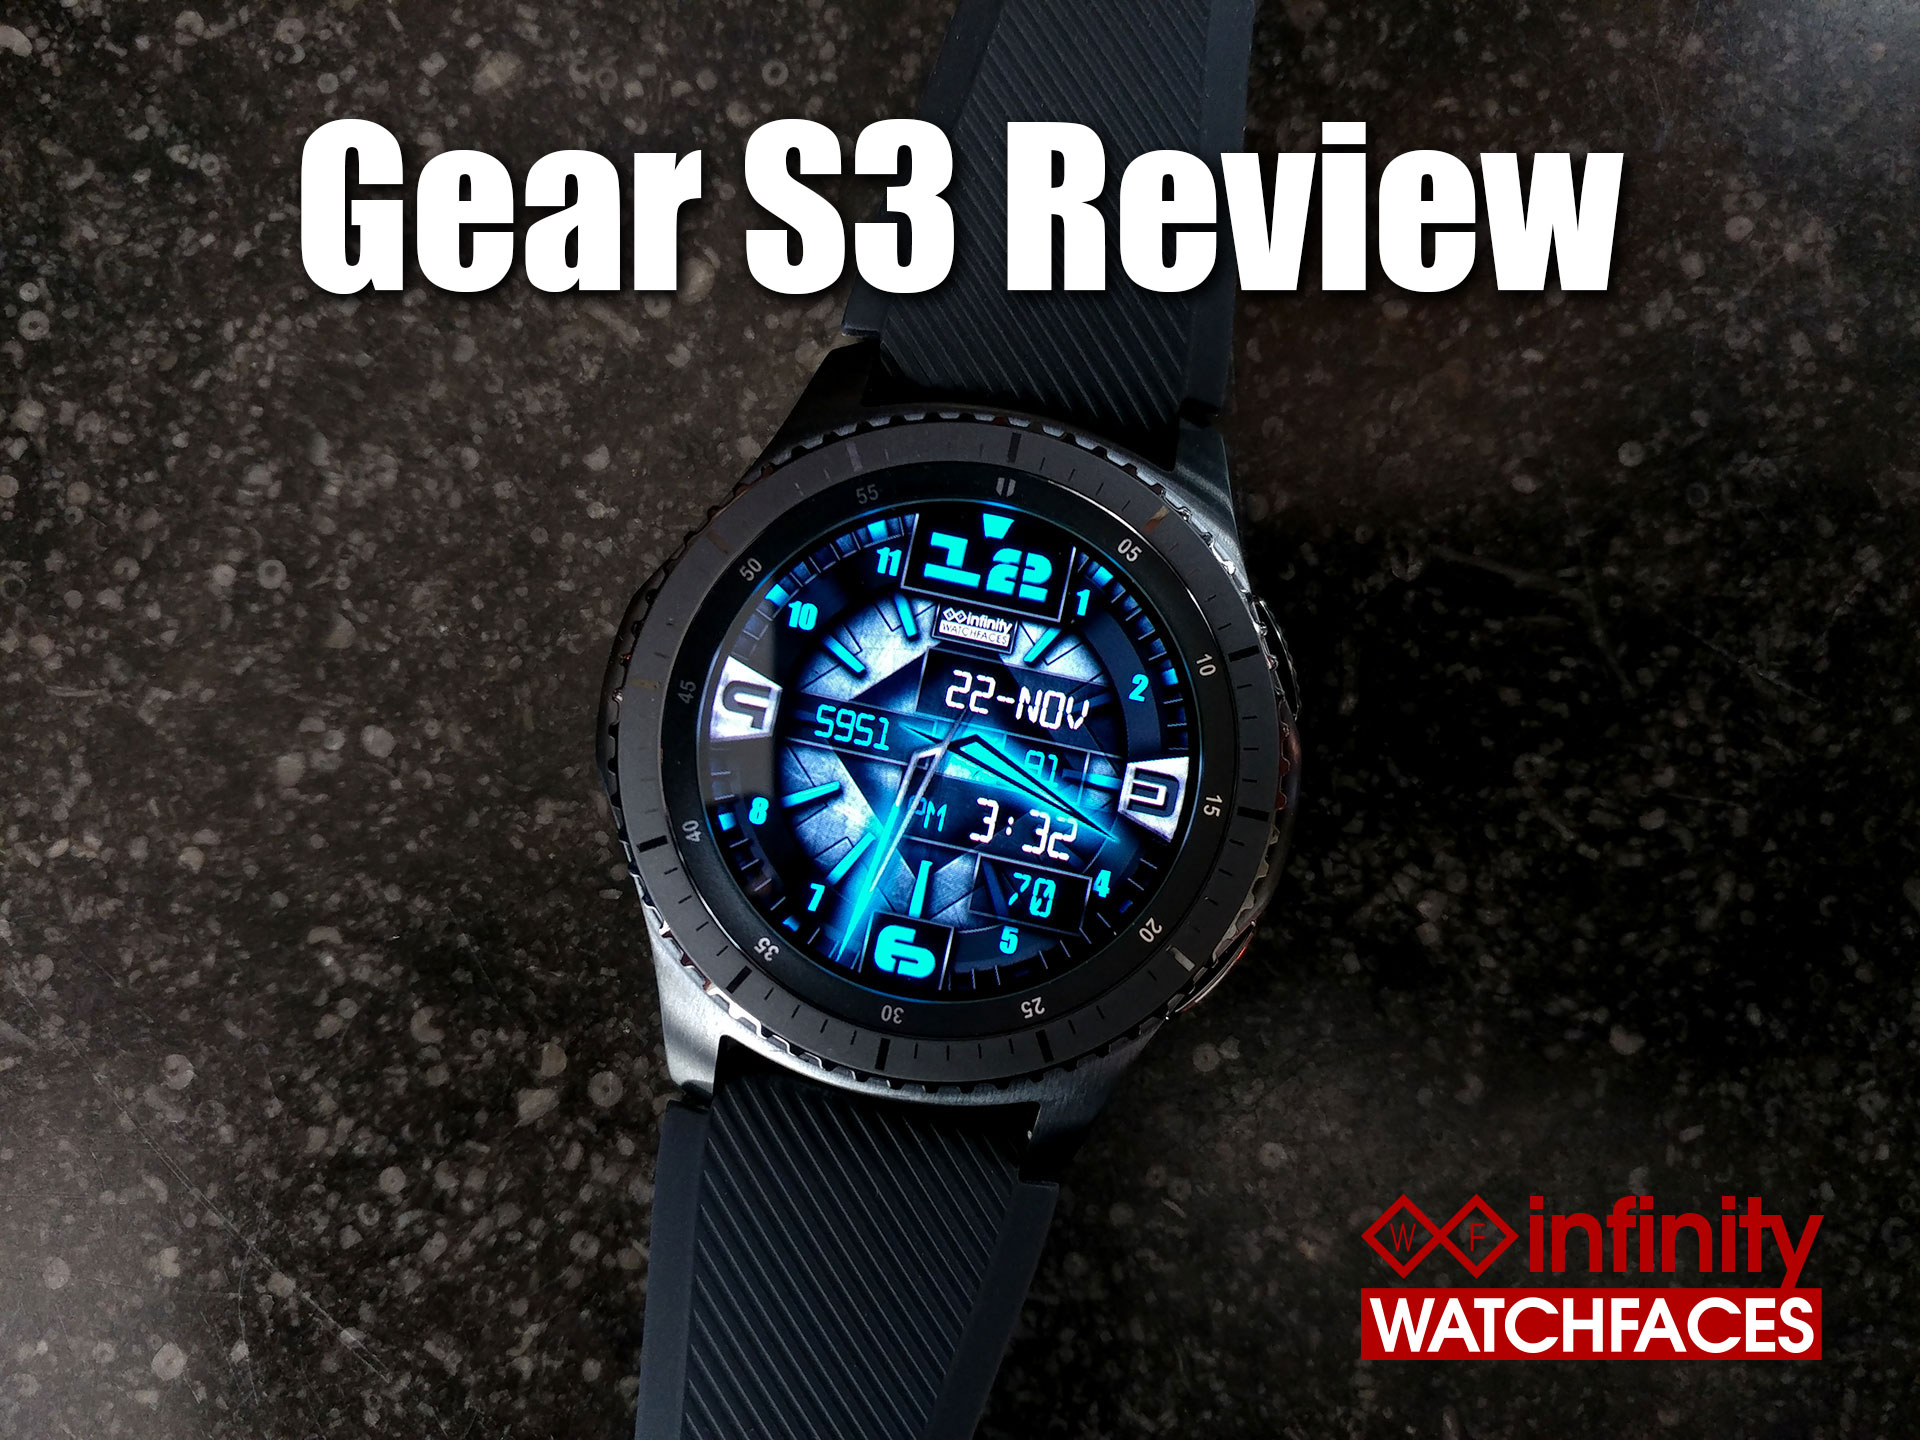 Samsung Gear S3 Review by Infinity Watchfaces